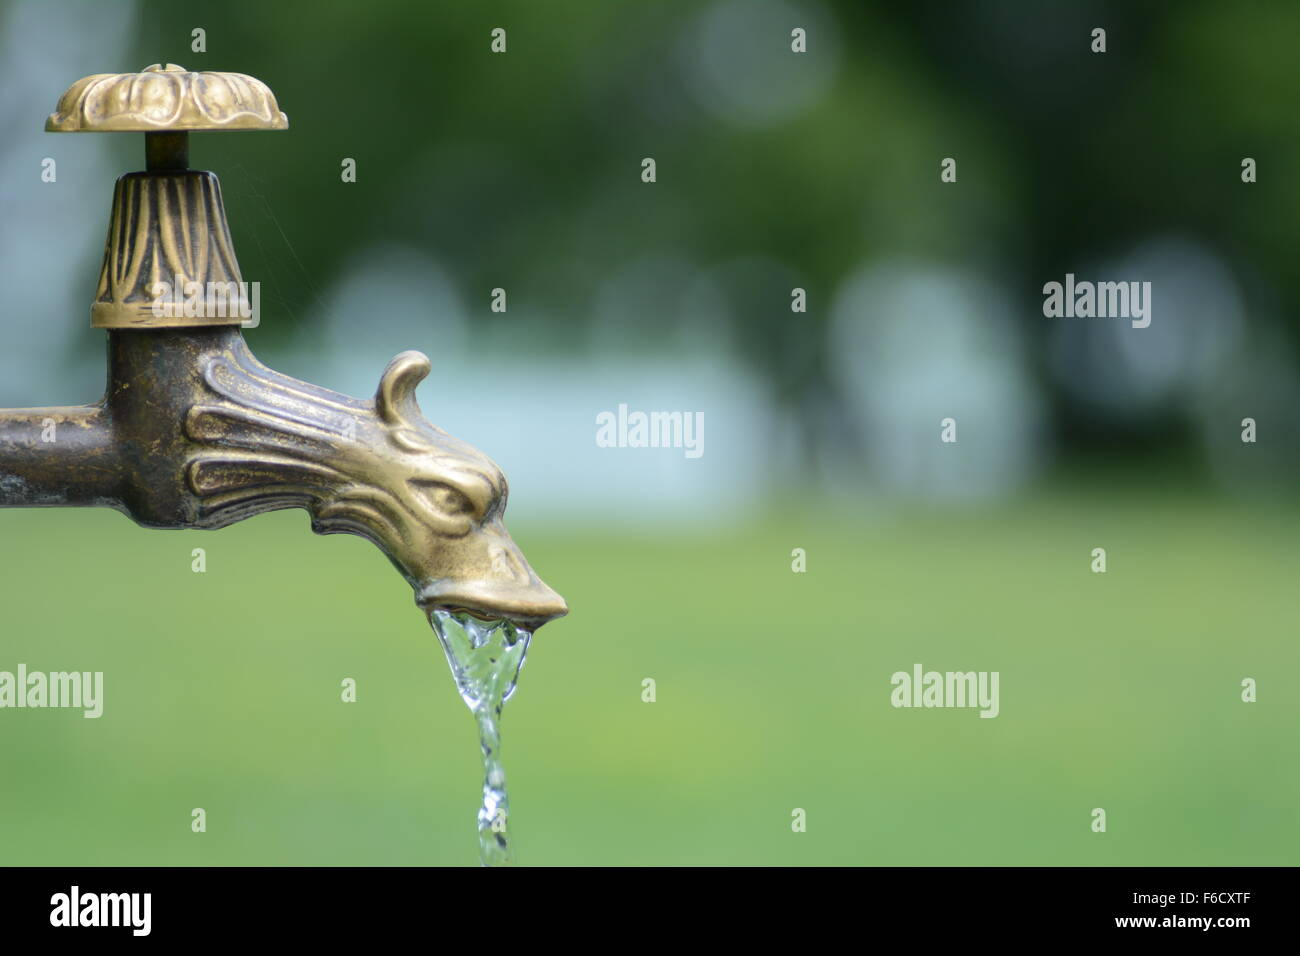 Brass dragon water tap in park with water to enjoy - Stock Image